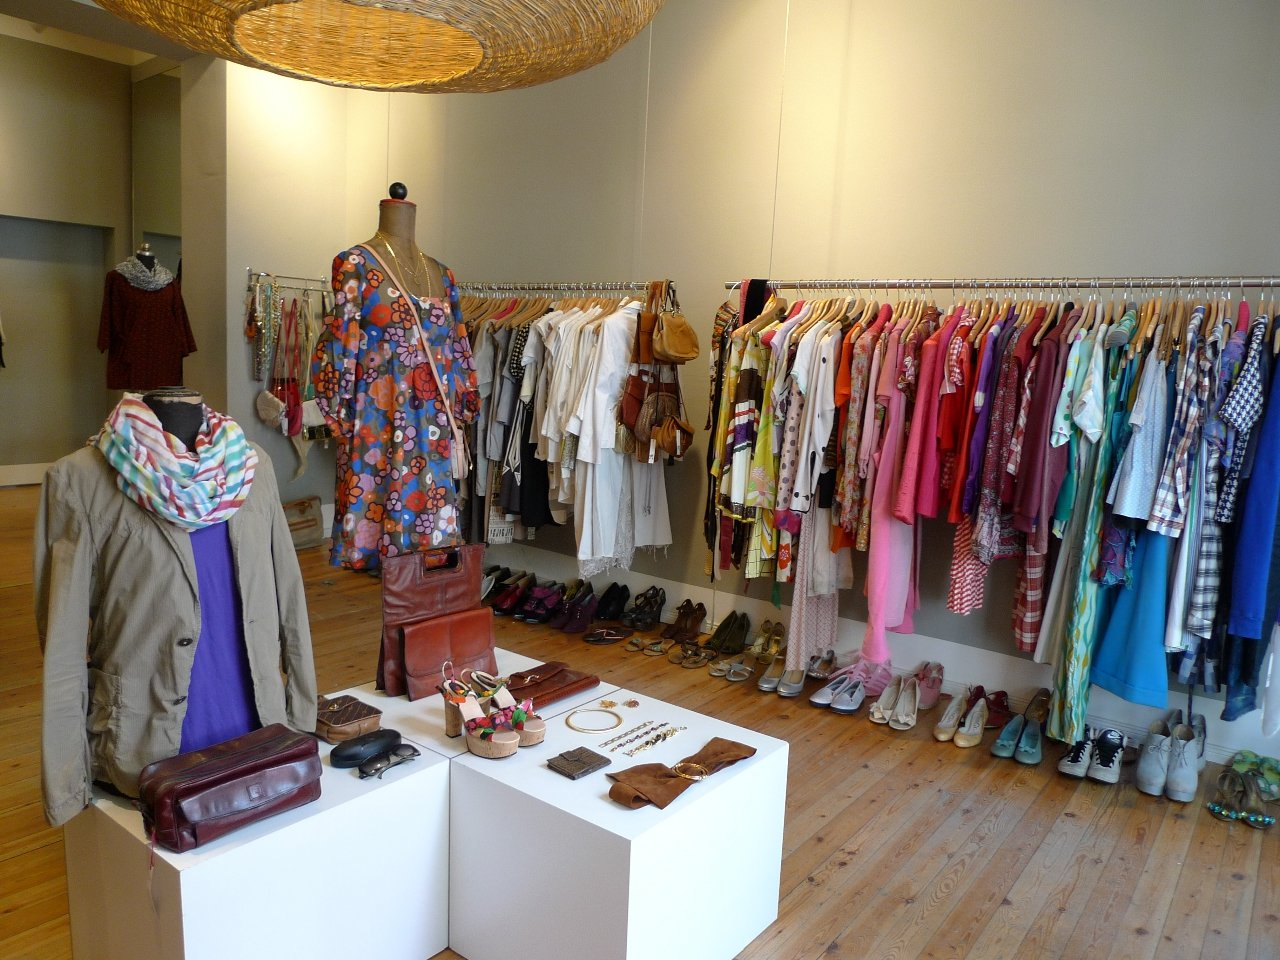 Buying Vintage Clothing – Pros and Cons